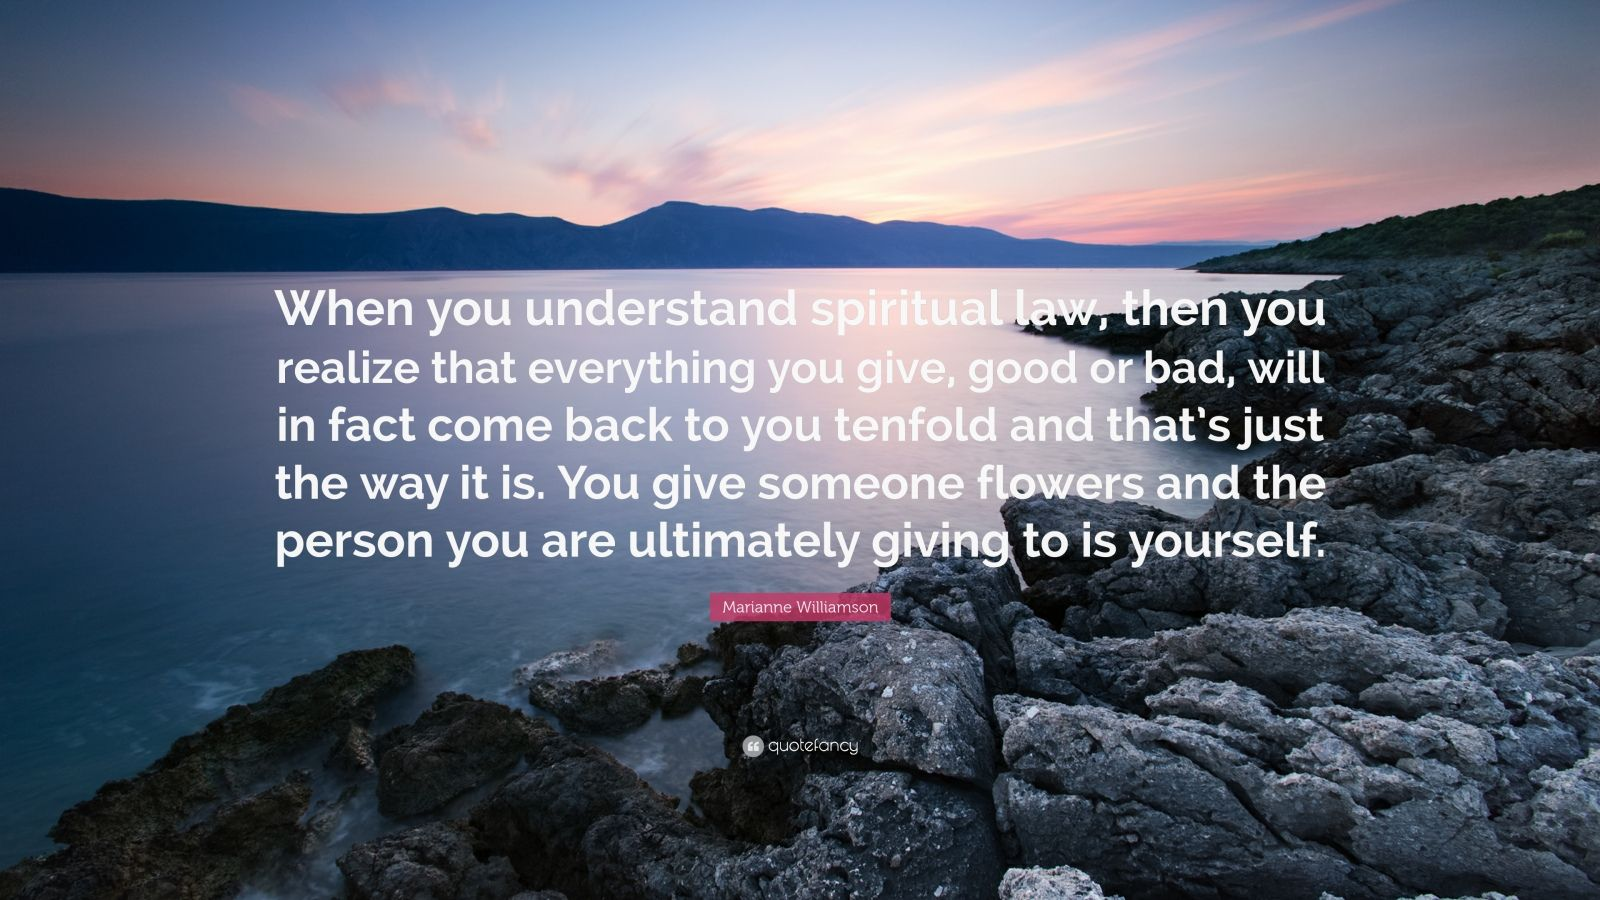 "Marianne Williamson Quote: ""When you understand spiritual law, then you realize that everything you give, good or bad, will in fact come back to you tenfold and that's just the way it is. You give someone flowers and the person you are ultimately giving to is yourself."""